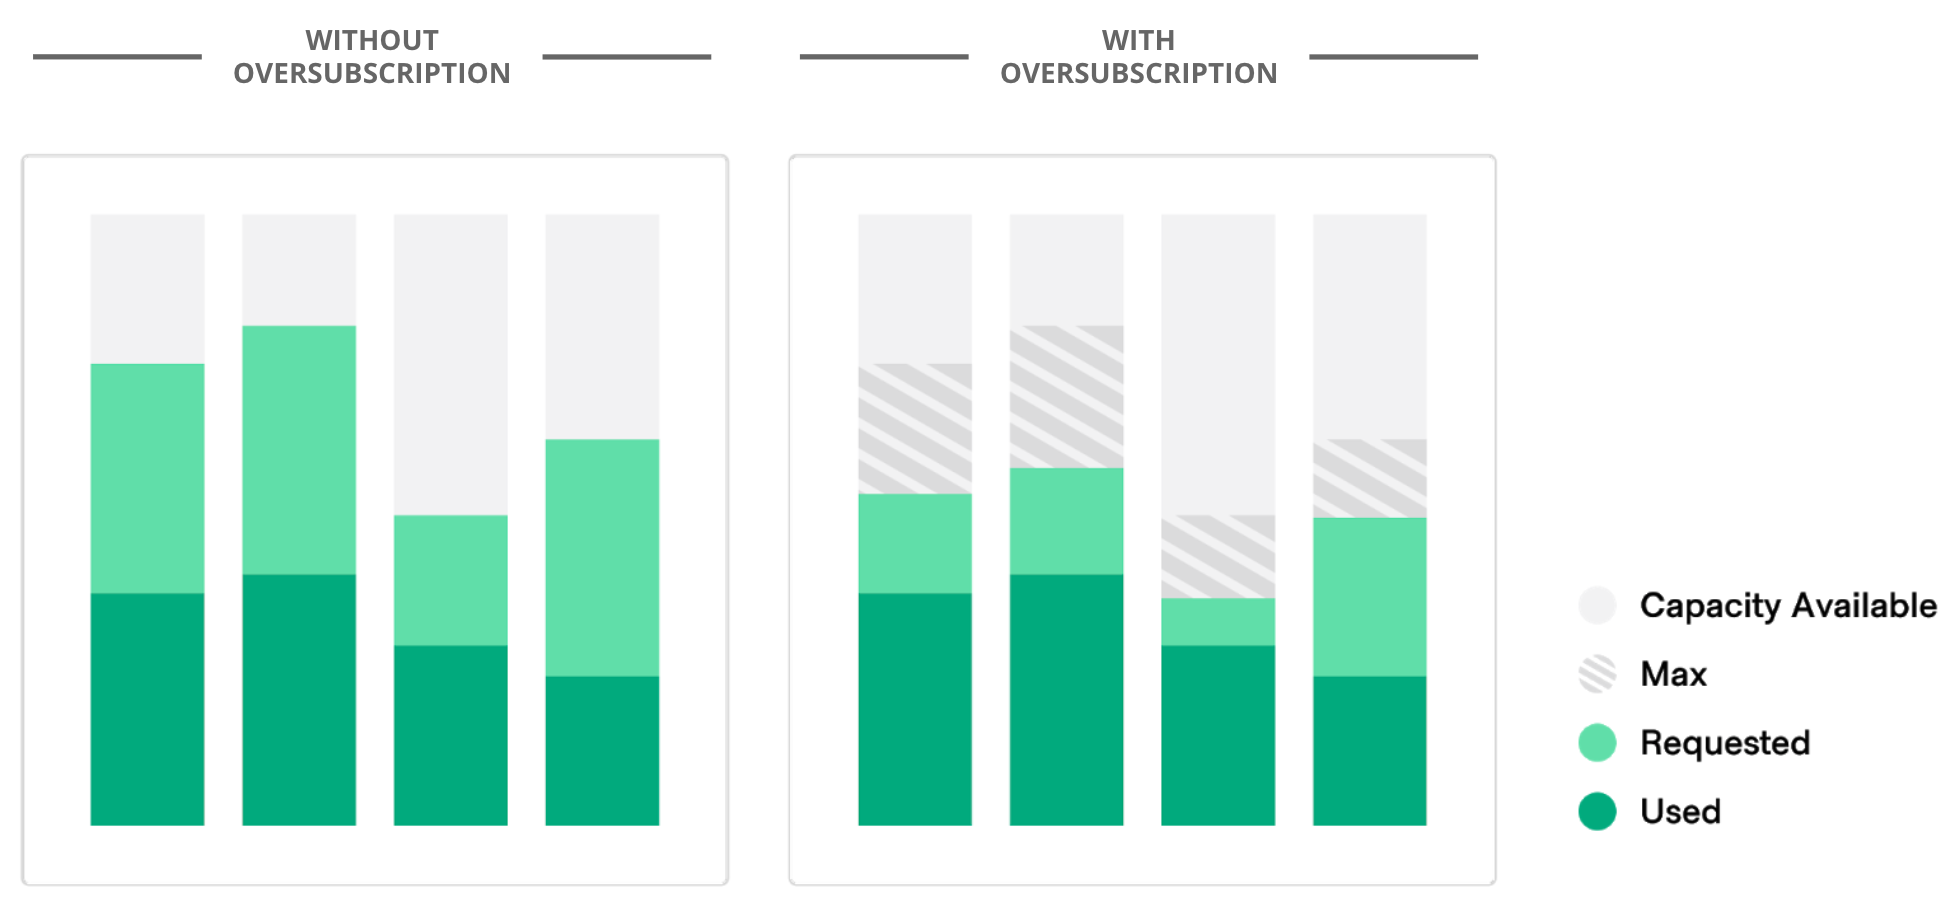 Capacity graphs with and without memory oversubscription